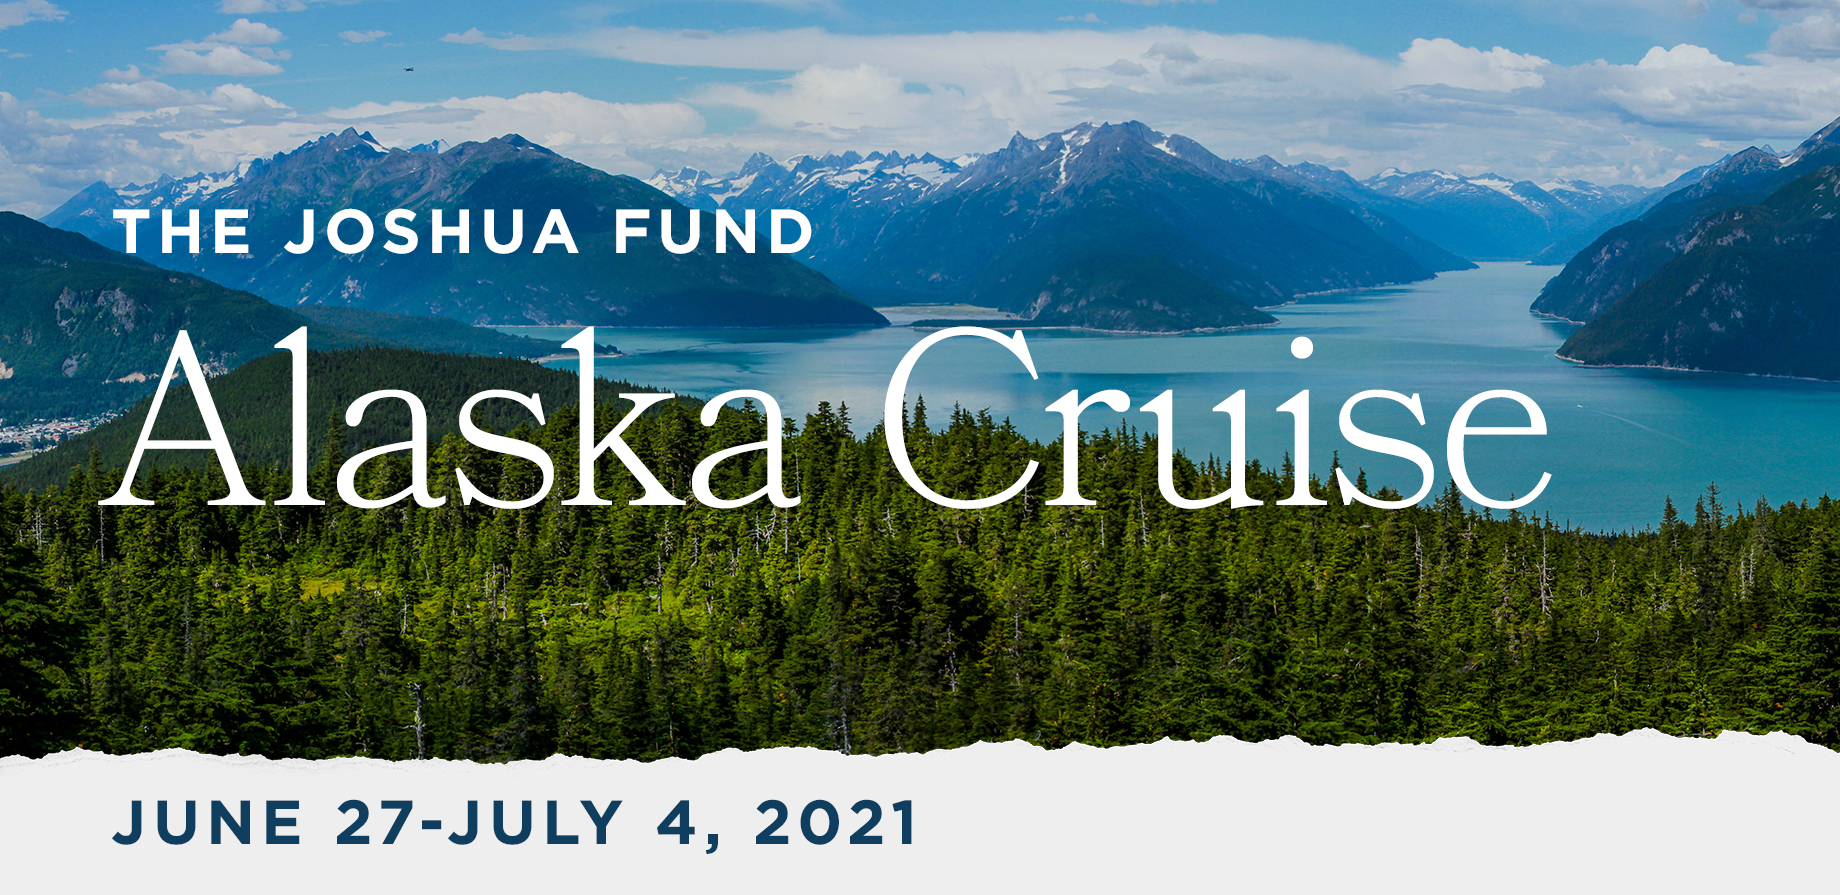 Take a Christian Cruise with Joshua Fund - Alaska Cruise - June 27-July 4, 2021